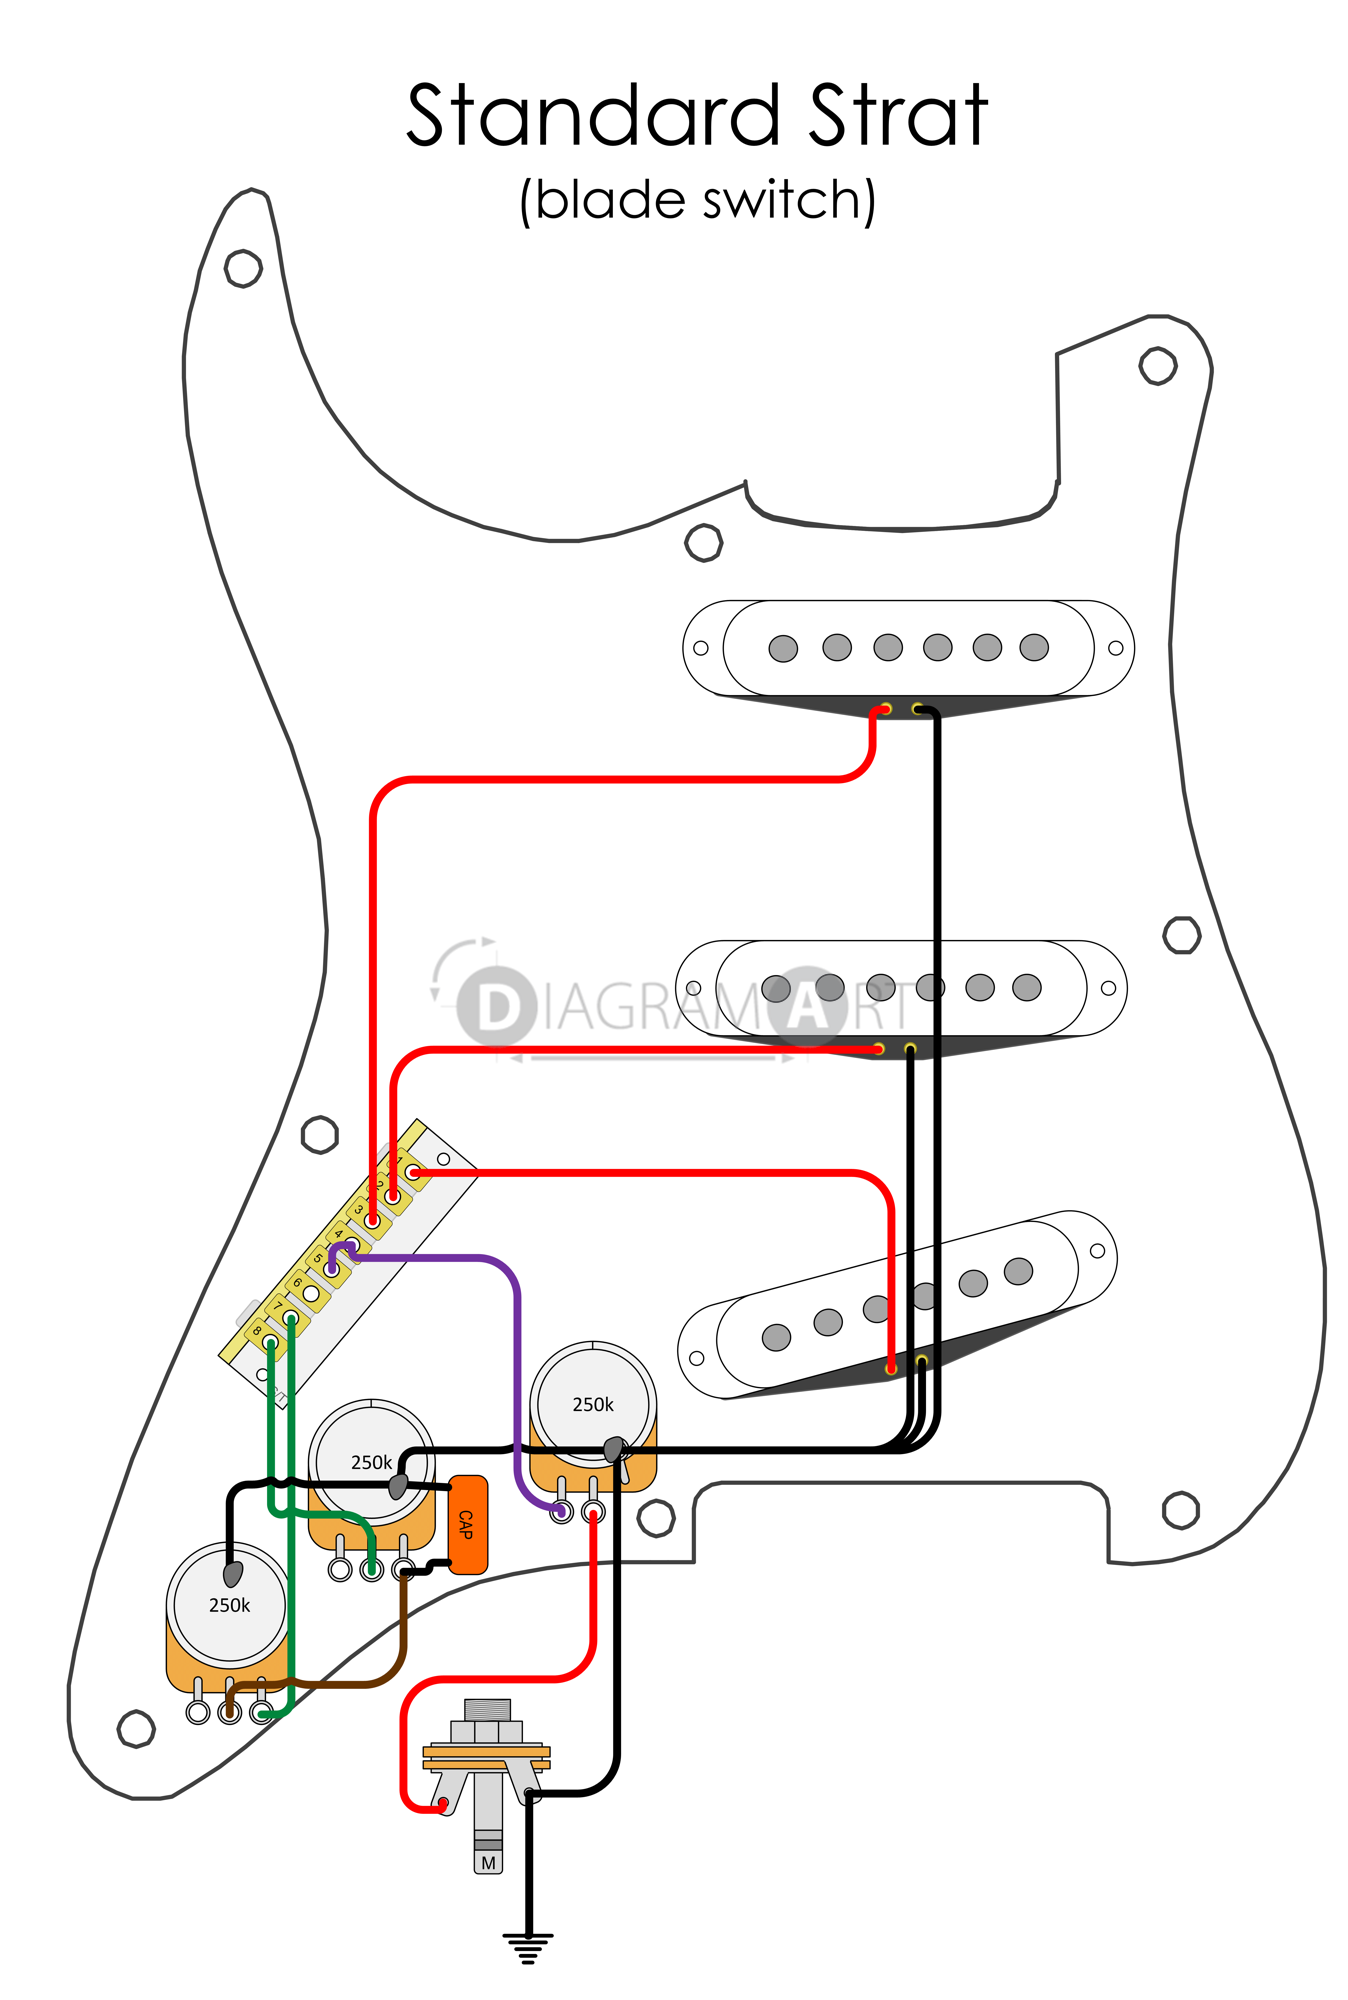 Electric Guitar Wiring  Standard Strat  Blade Switch